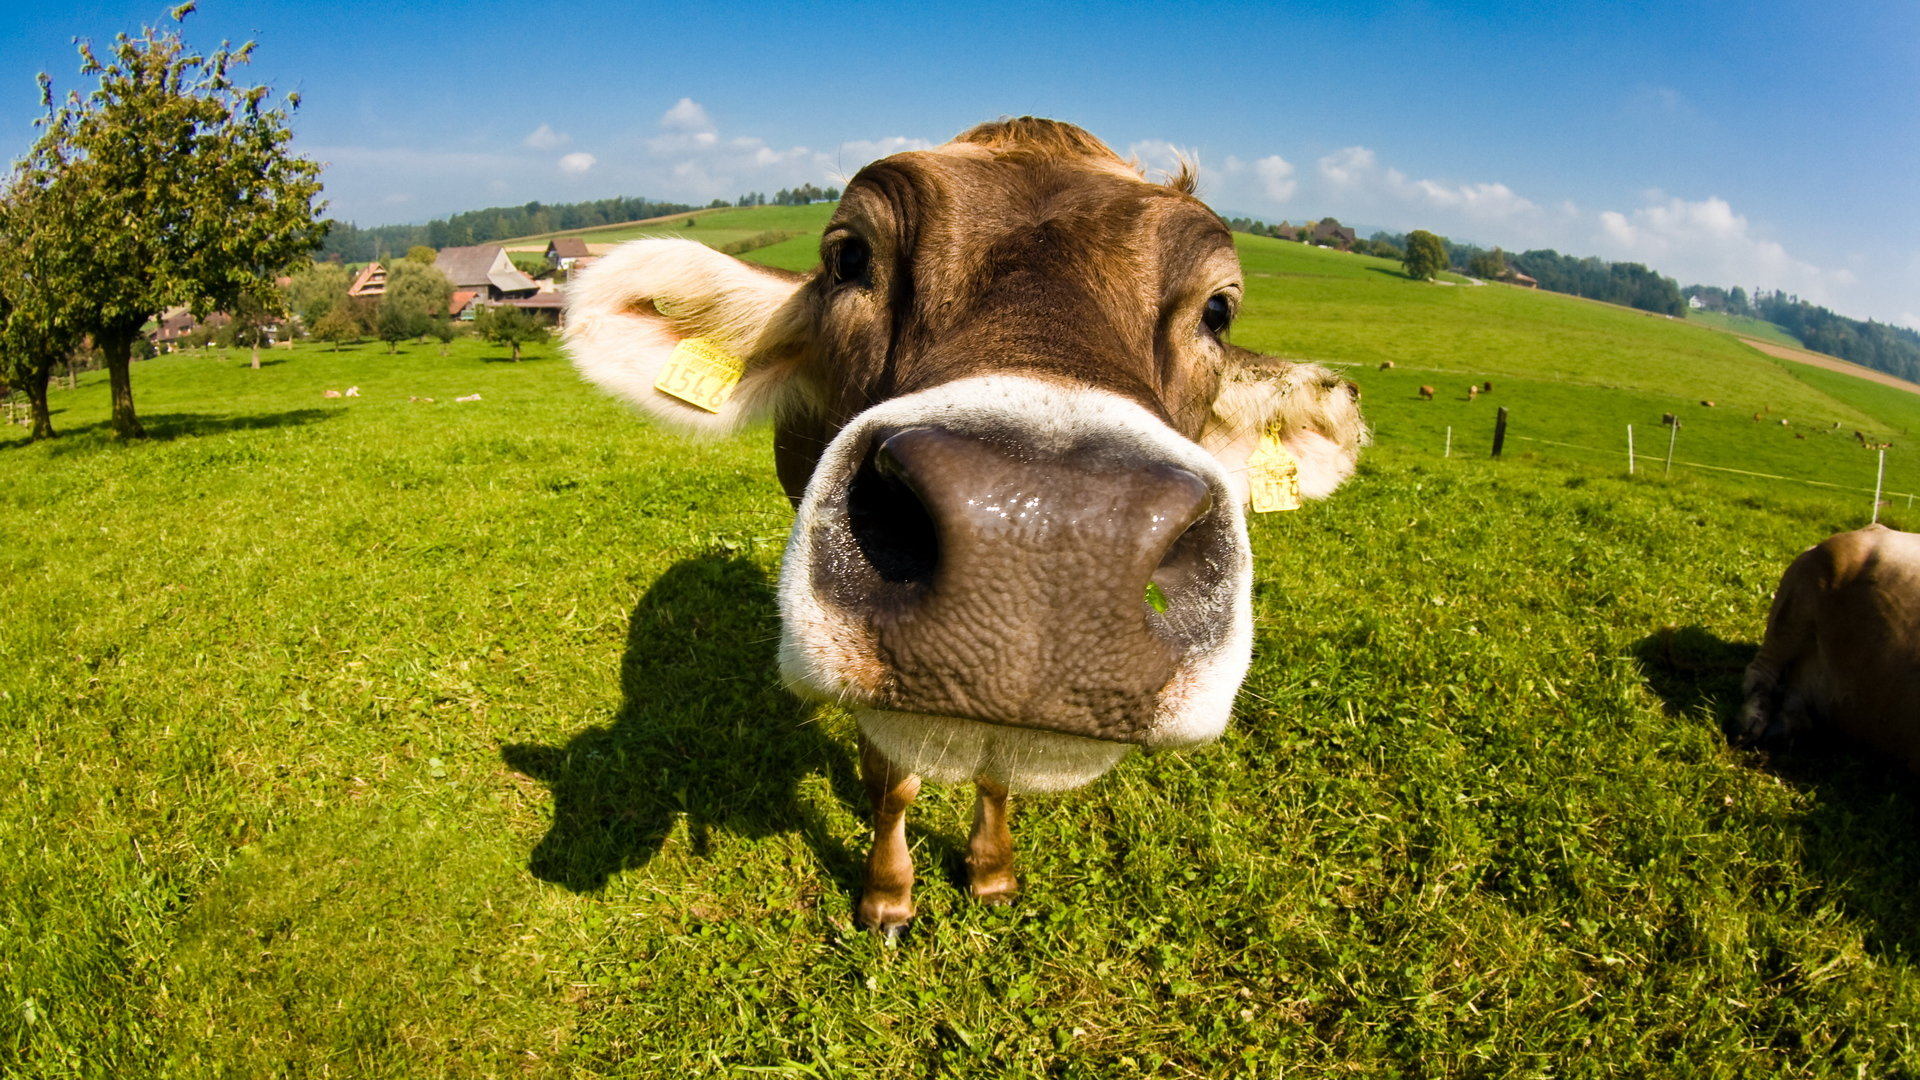 Free Cow high quality wallpaper ID:466880 for full hd 1080p computer